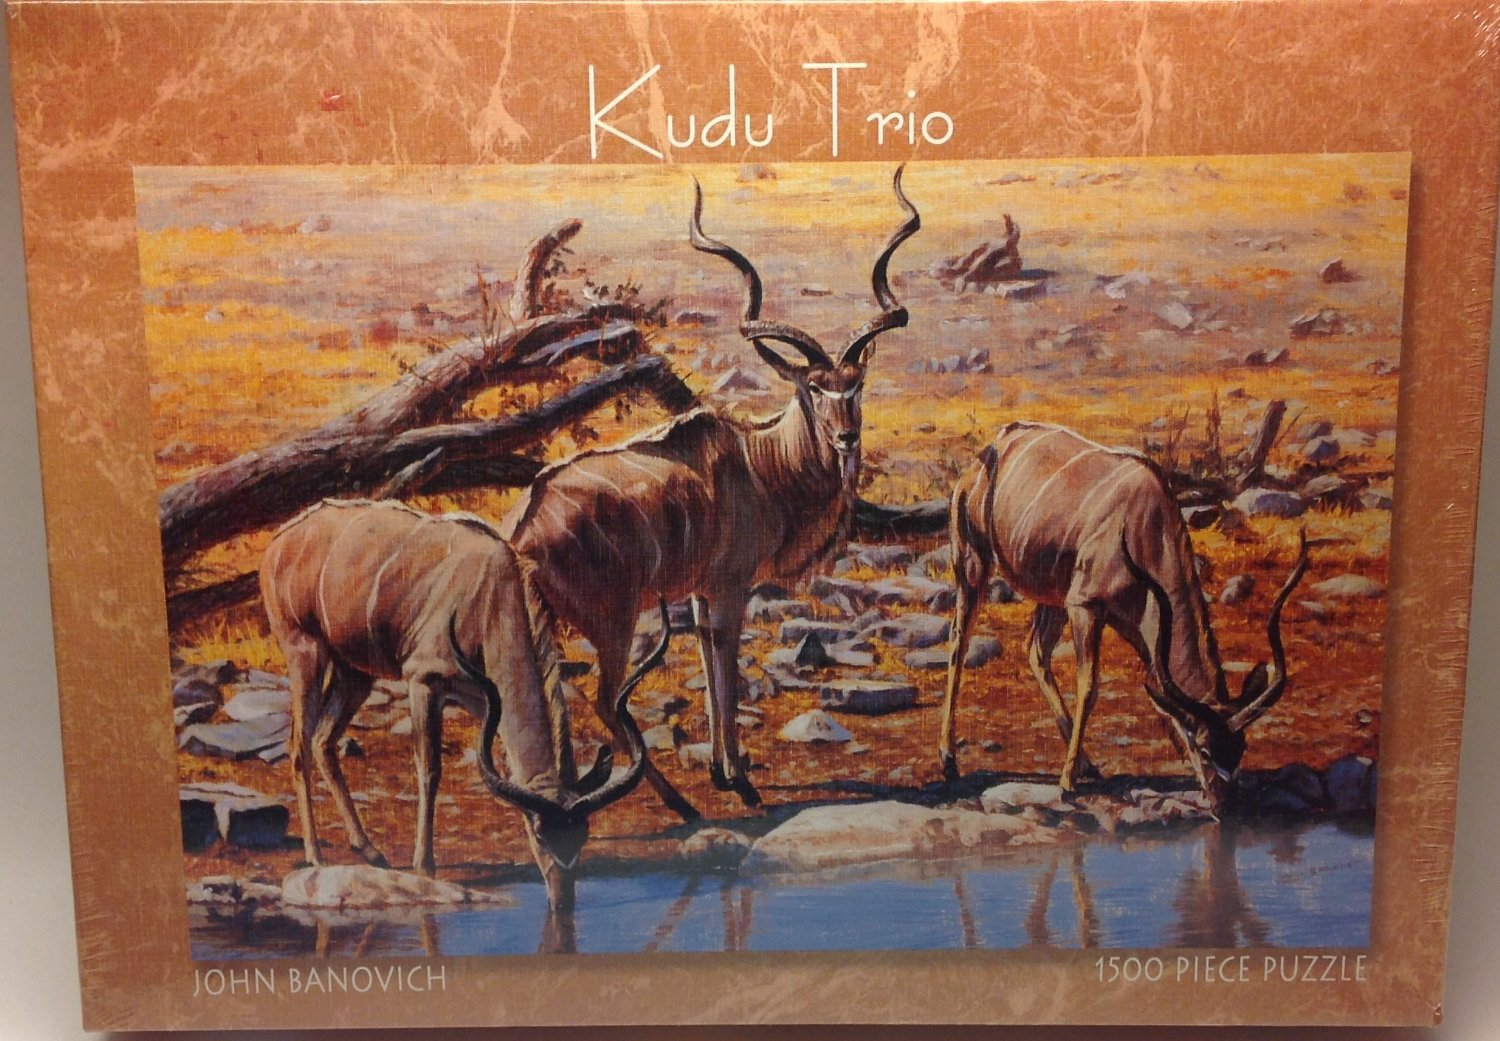 Kudu Trio Puzzle 1500 pieces